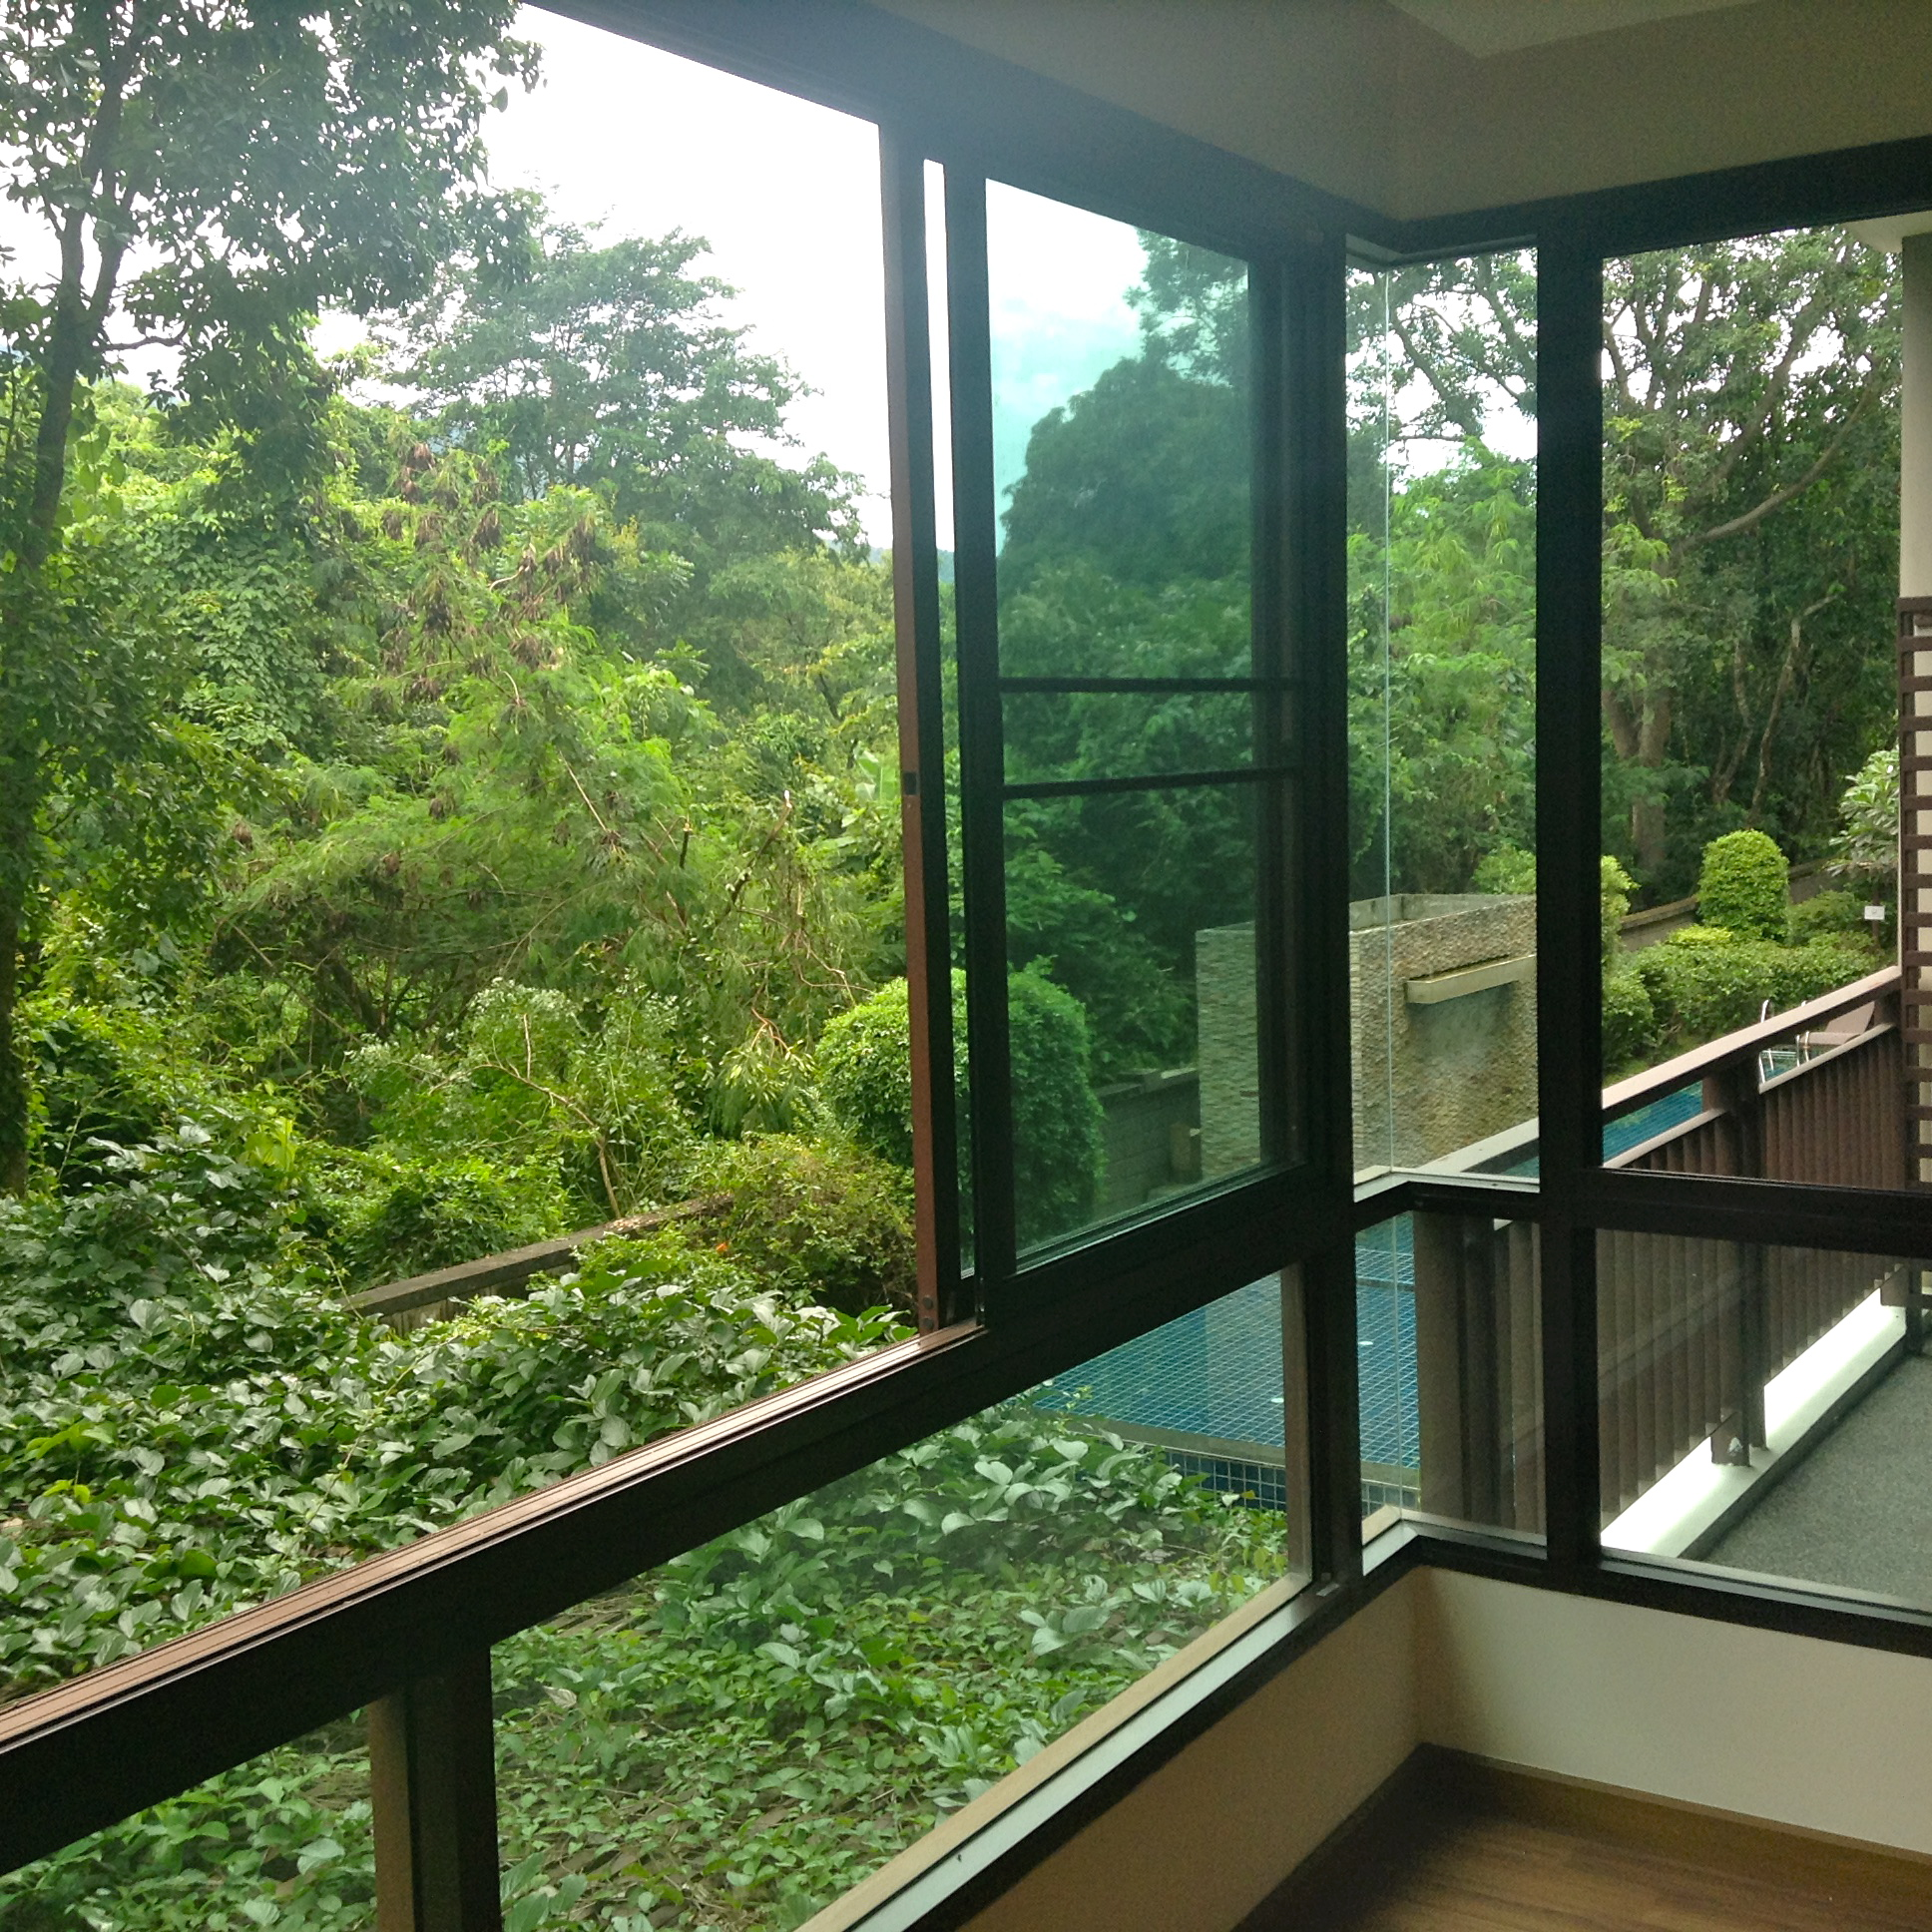 Cr1220 Cs721 Nice 1 Bedroom Condo For Rent In Chiang Mai City